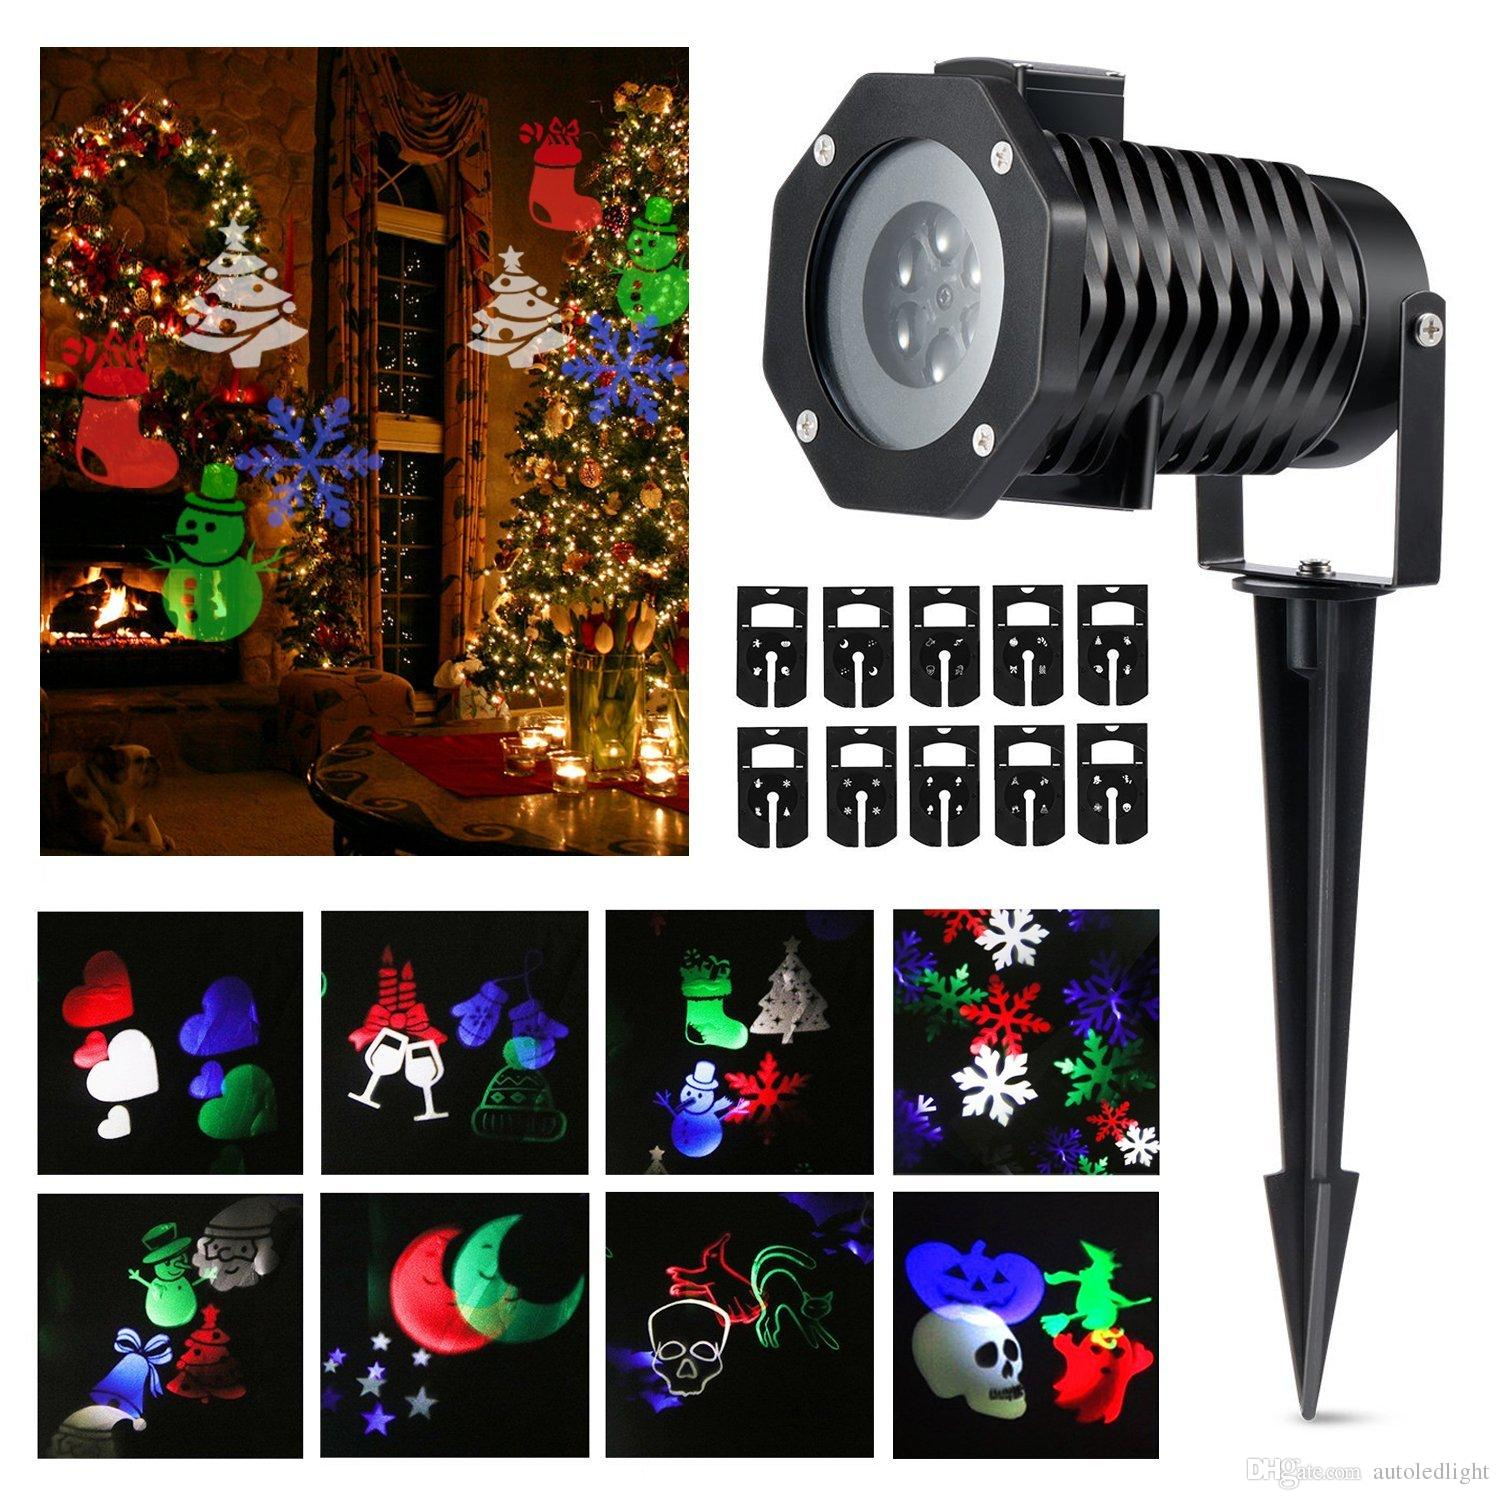 LED Effects Christmas Lights Spotlights Landscape Projector Snowflakes Santa Stars Gifts Pattern Lens Moving Light Show for Xmas